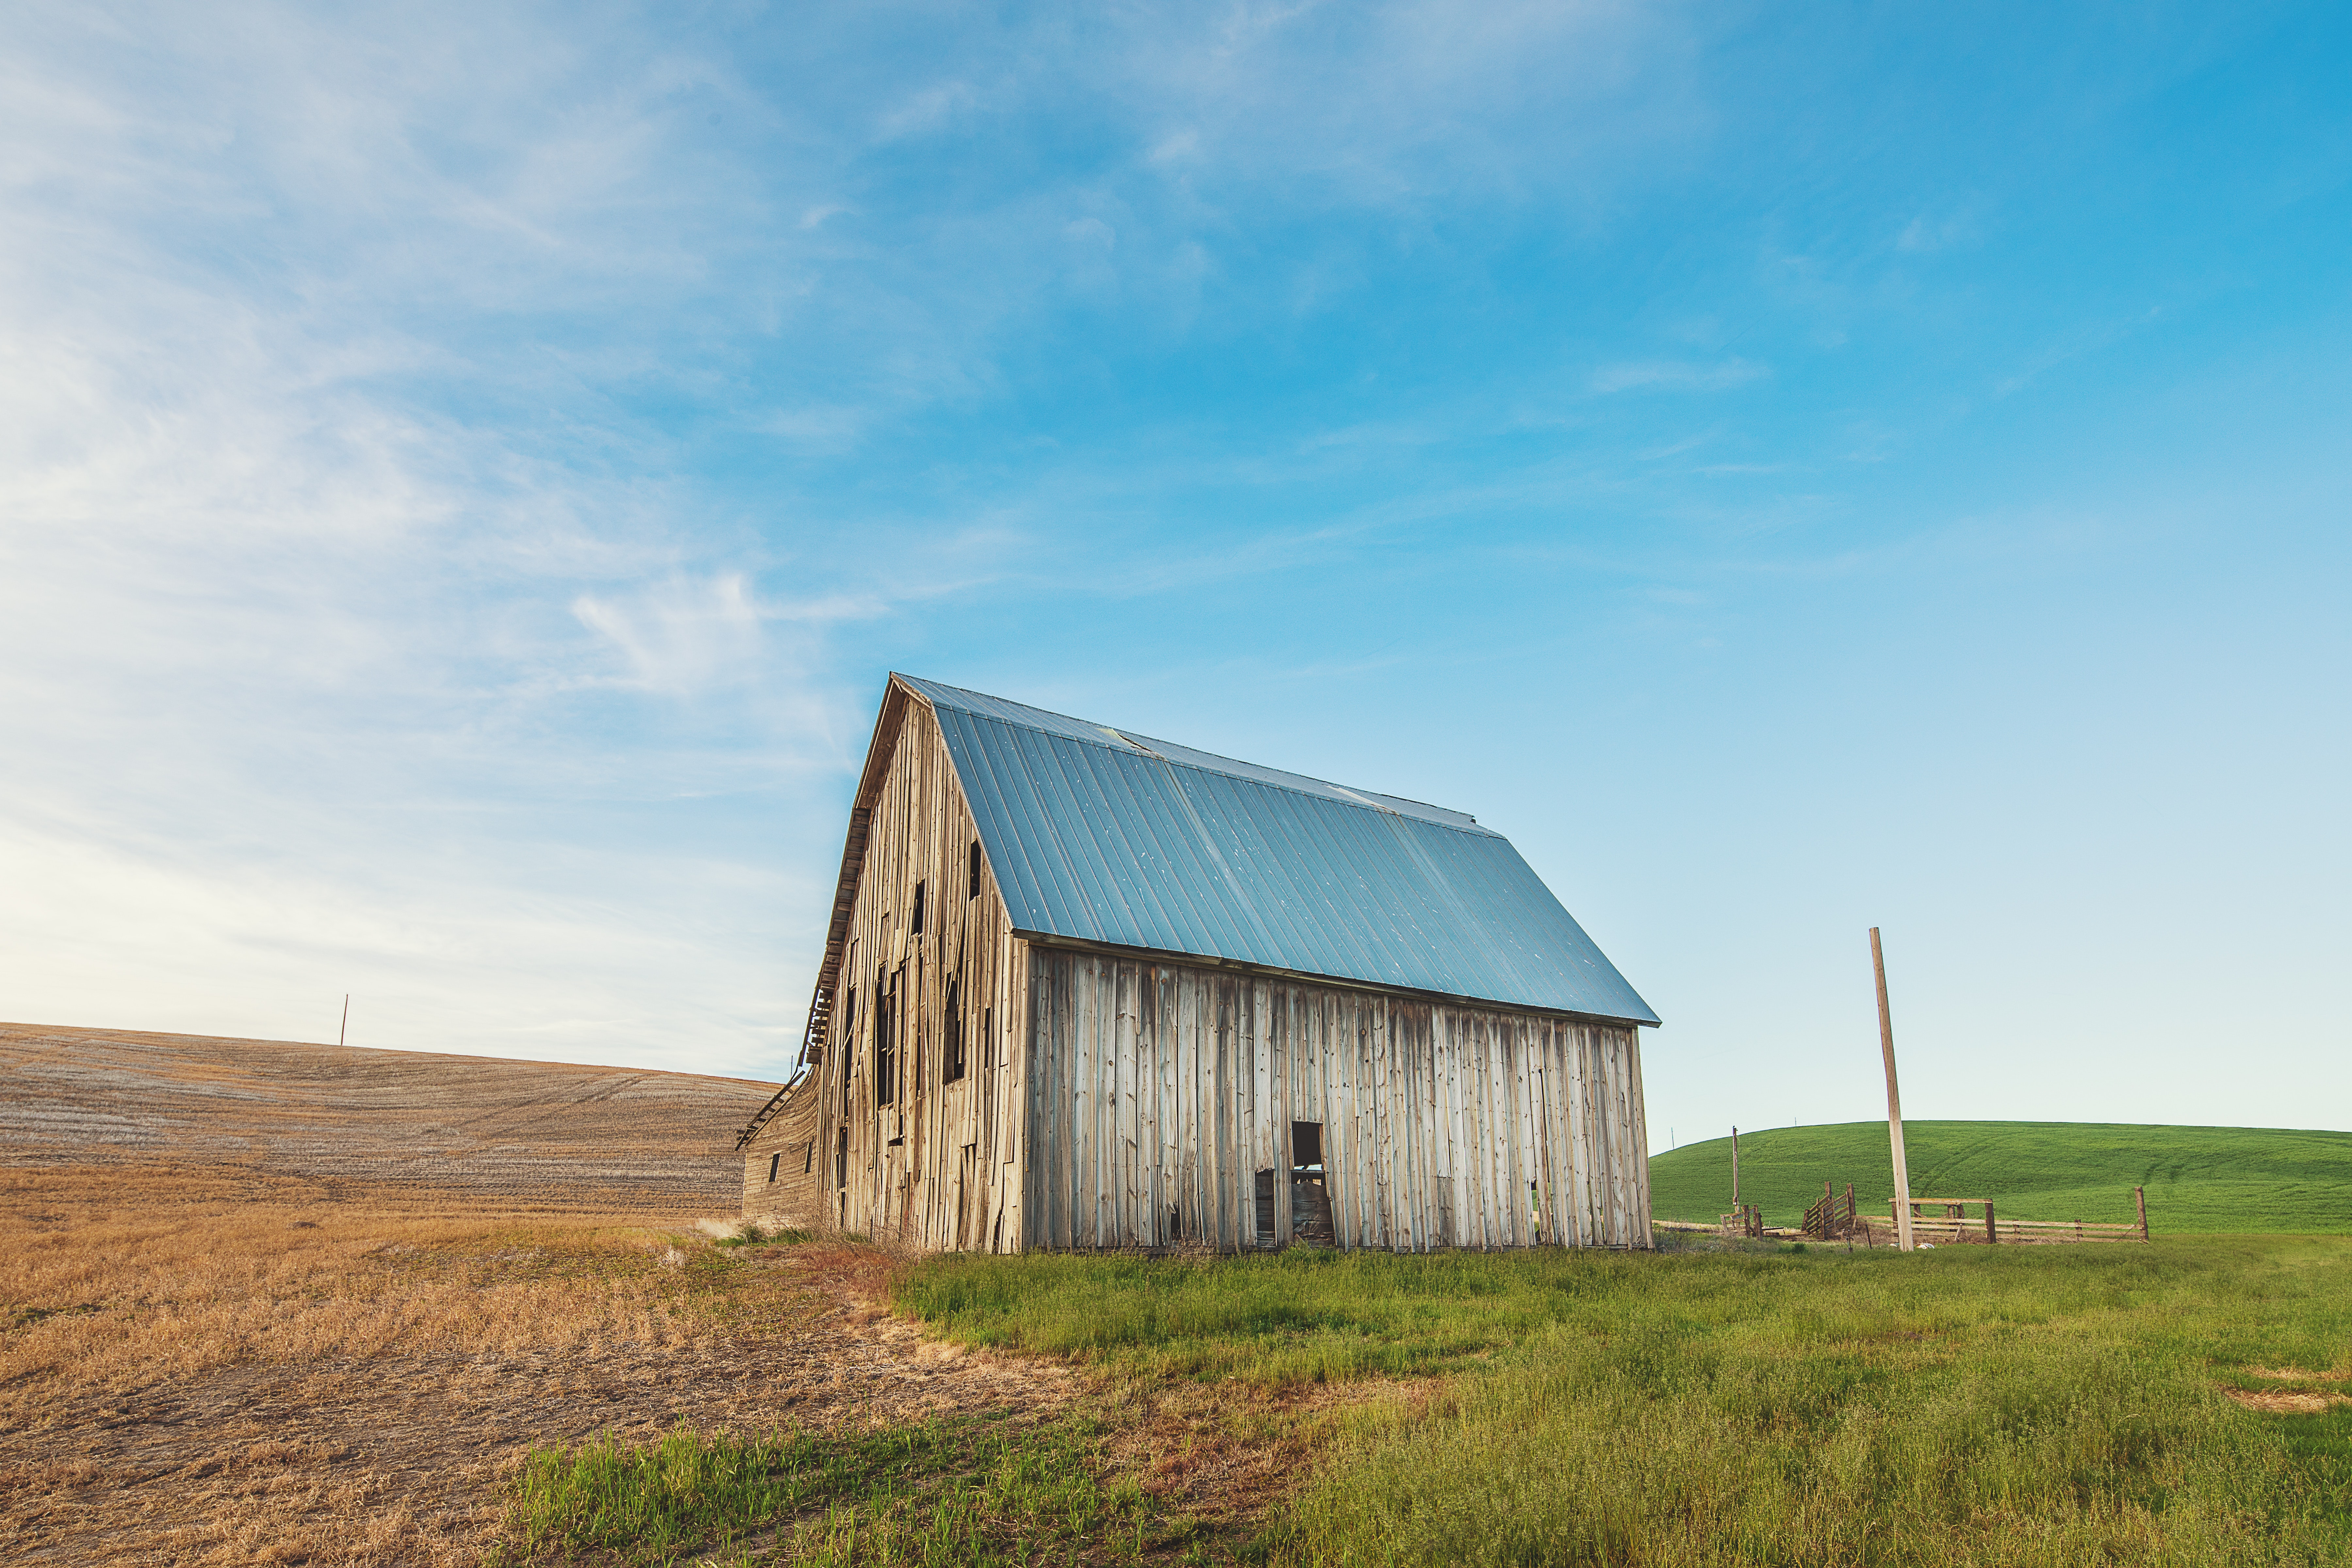 abandoned-agriculture-barn-732550